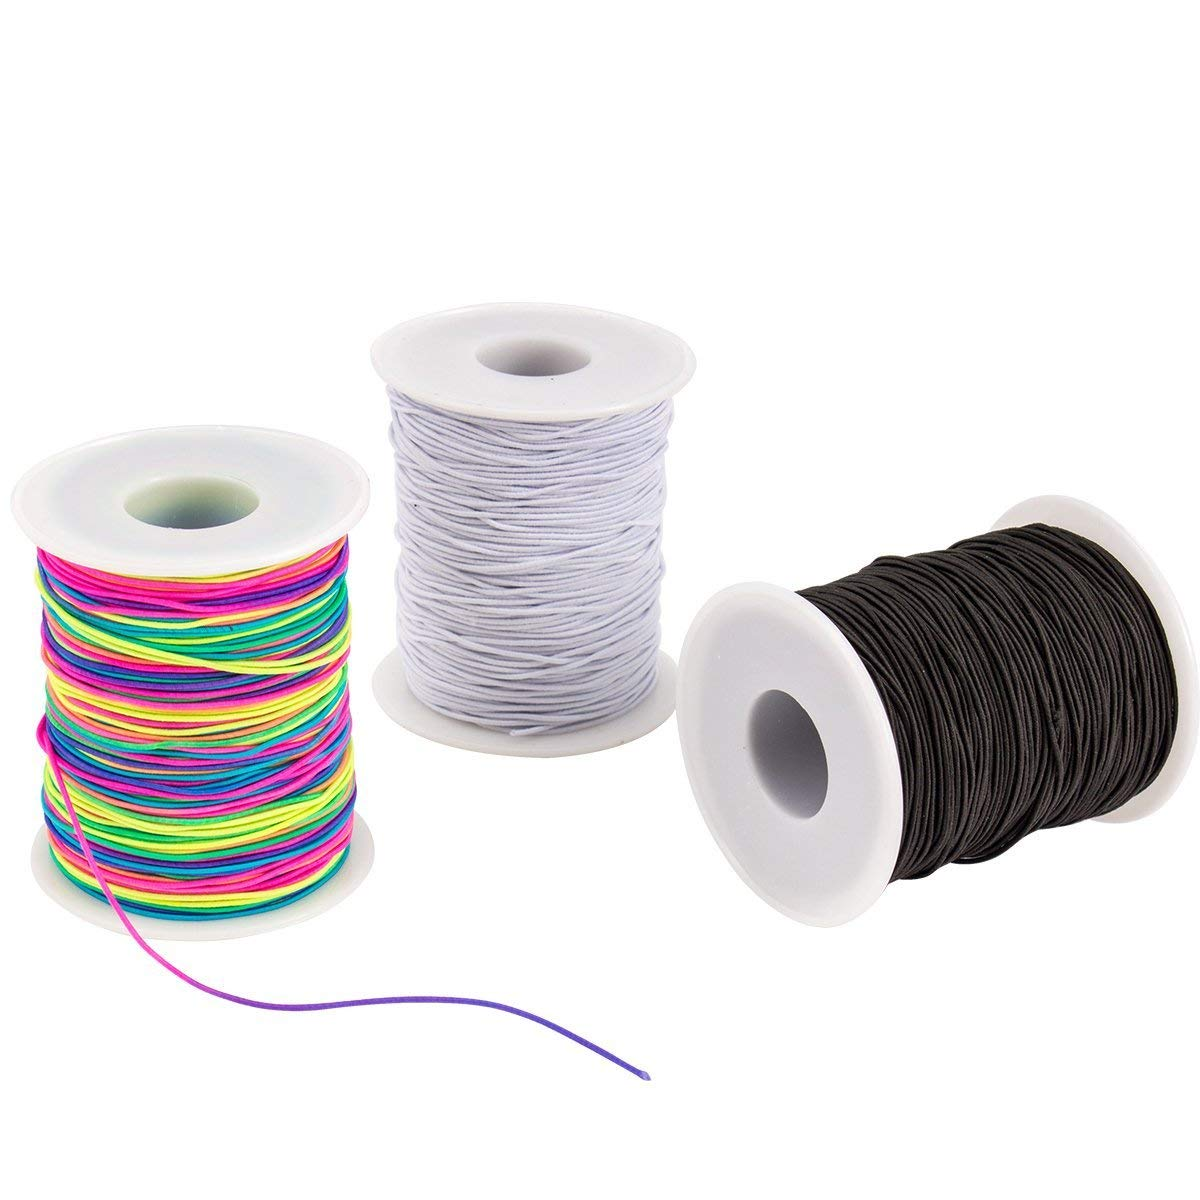 Each Color One Roll 10 Rolls 26 Gauge 130 Yards Artistic Jewelry Beading Copper Wire For Crafts Beading Jewelry Making